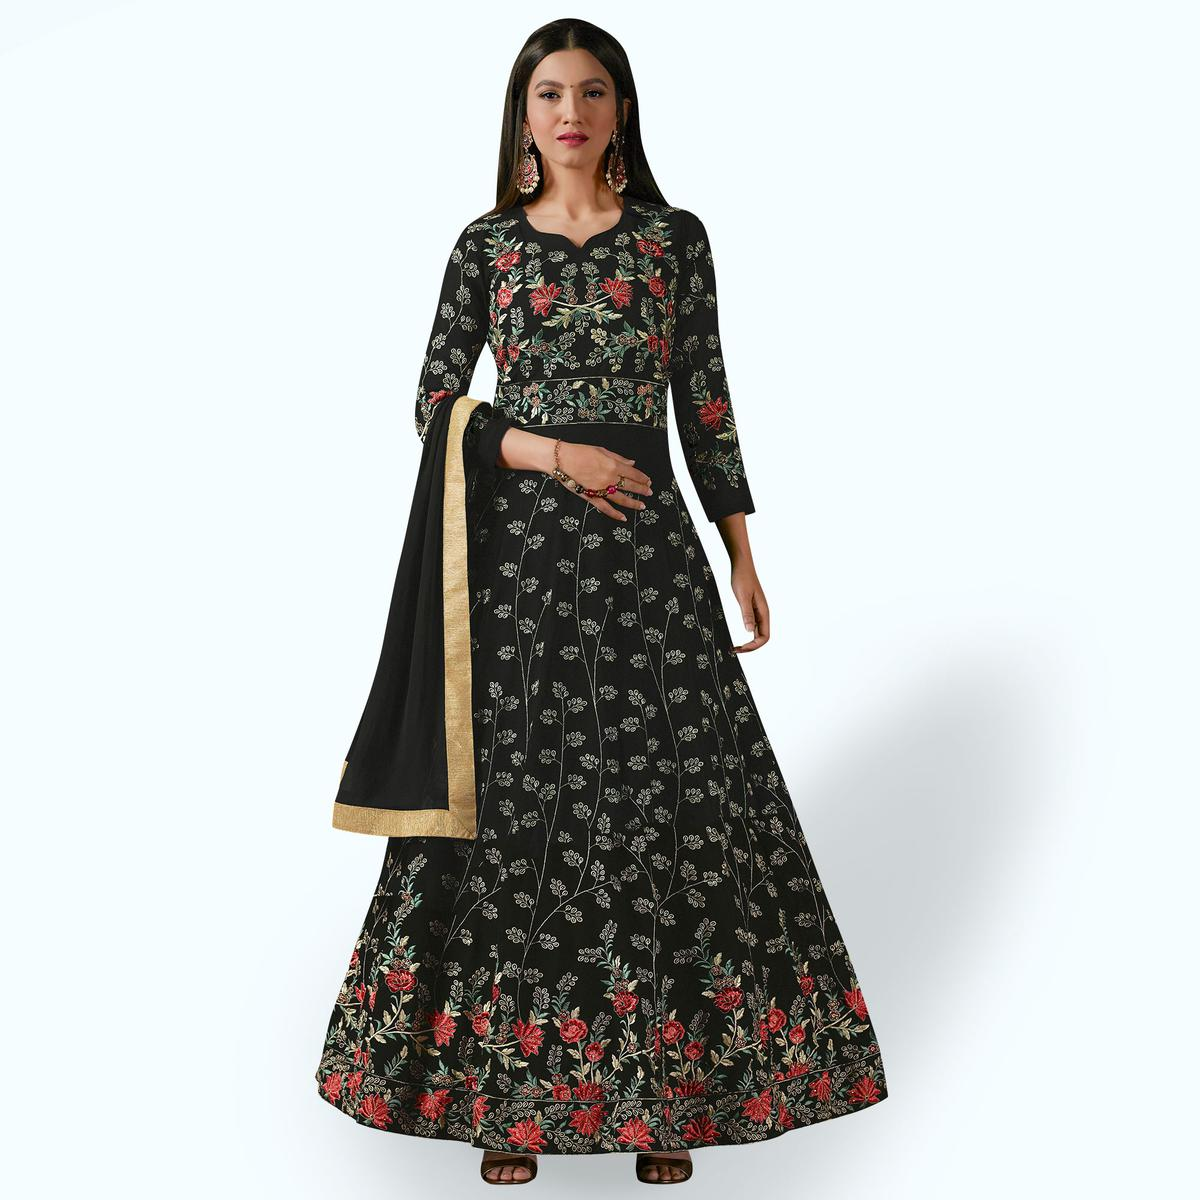 Blooming Black Colored Partywear Designer Embroidered Georgette Anarkali Suit